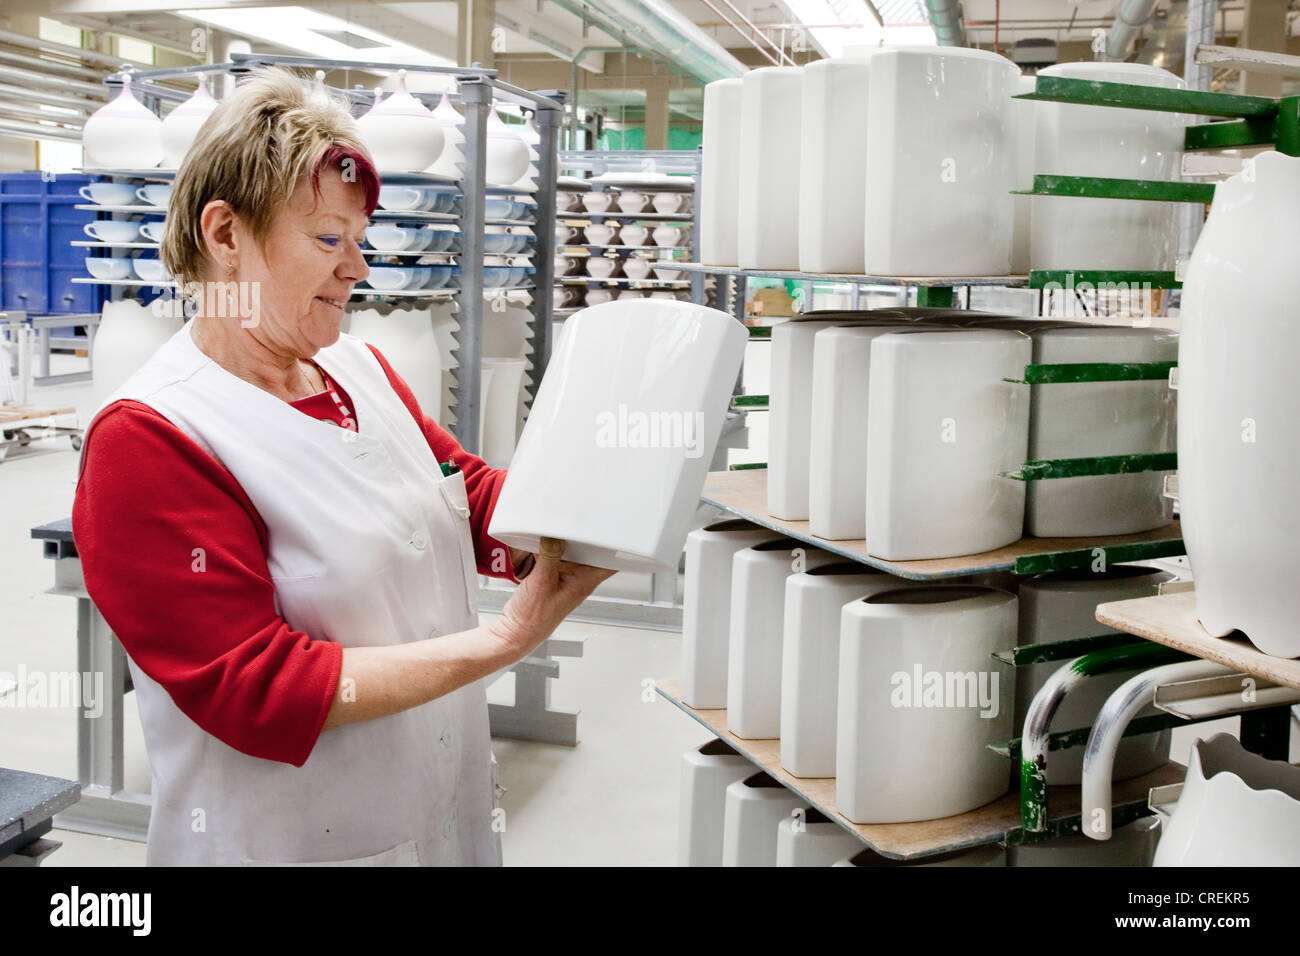 Employee during the final inspection of Rosenthal vases, in the production of tableware at the porcelain manufacturer - Stock Image